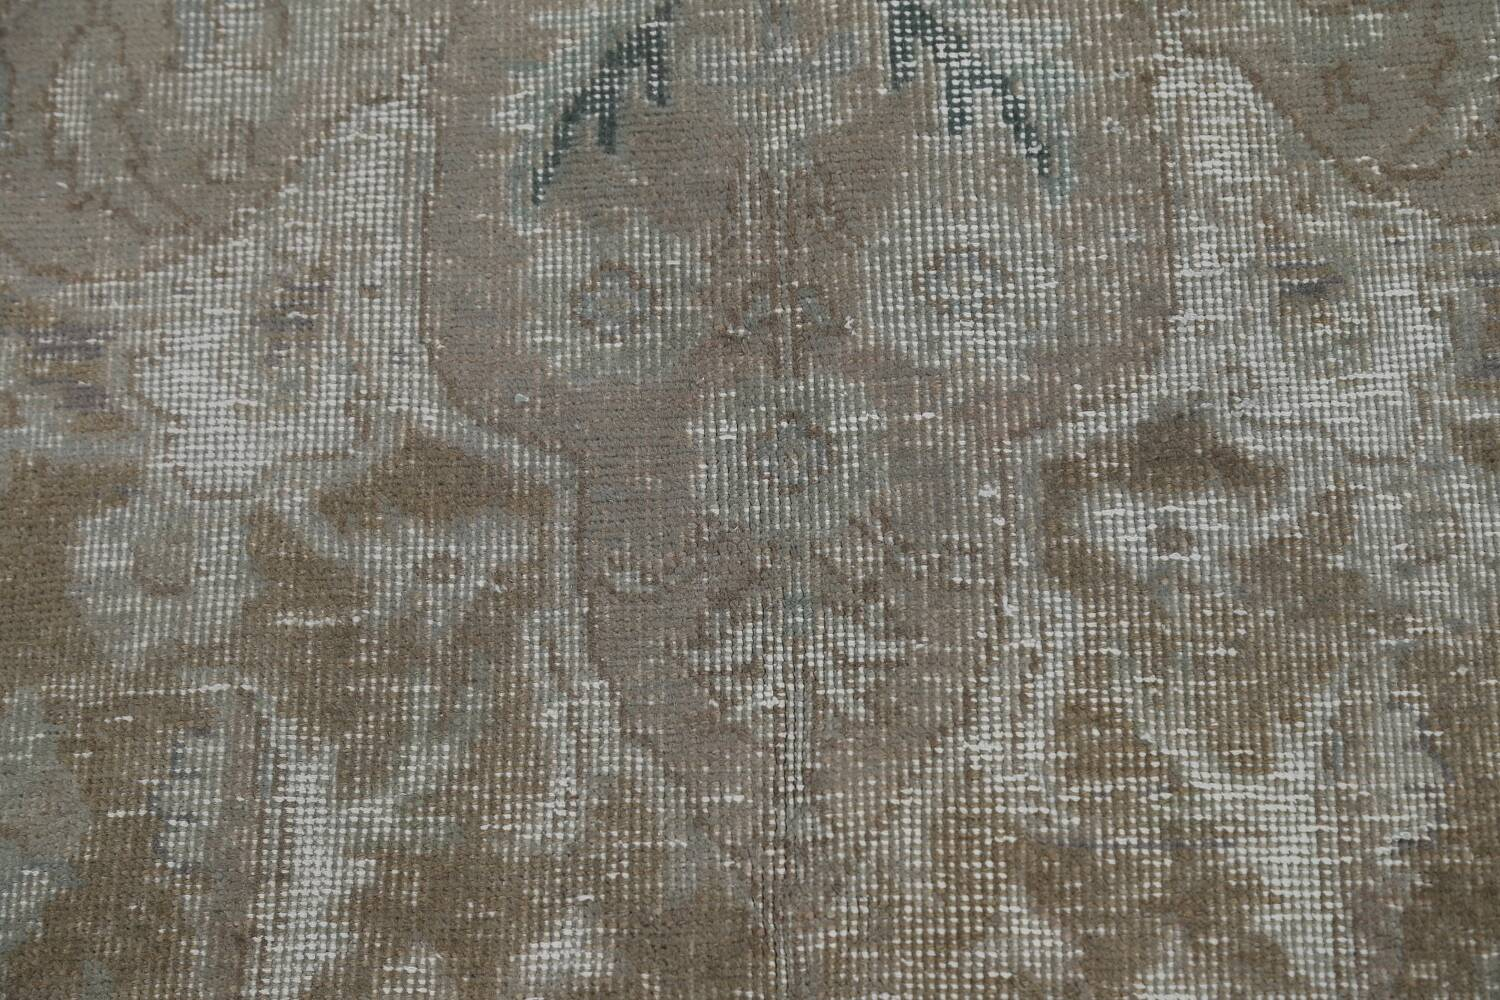 Muted Distressed Tabriz Persian Area Rug 10x13 image 11